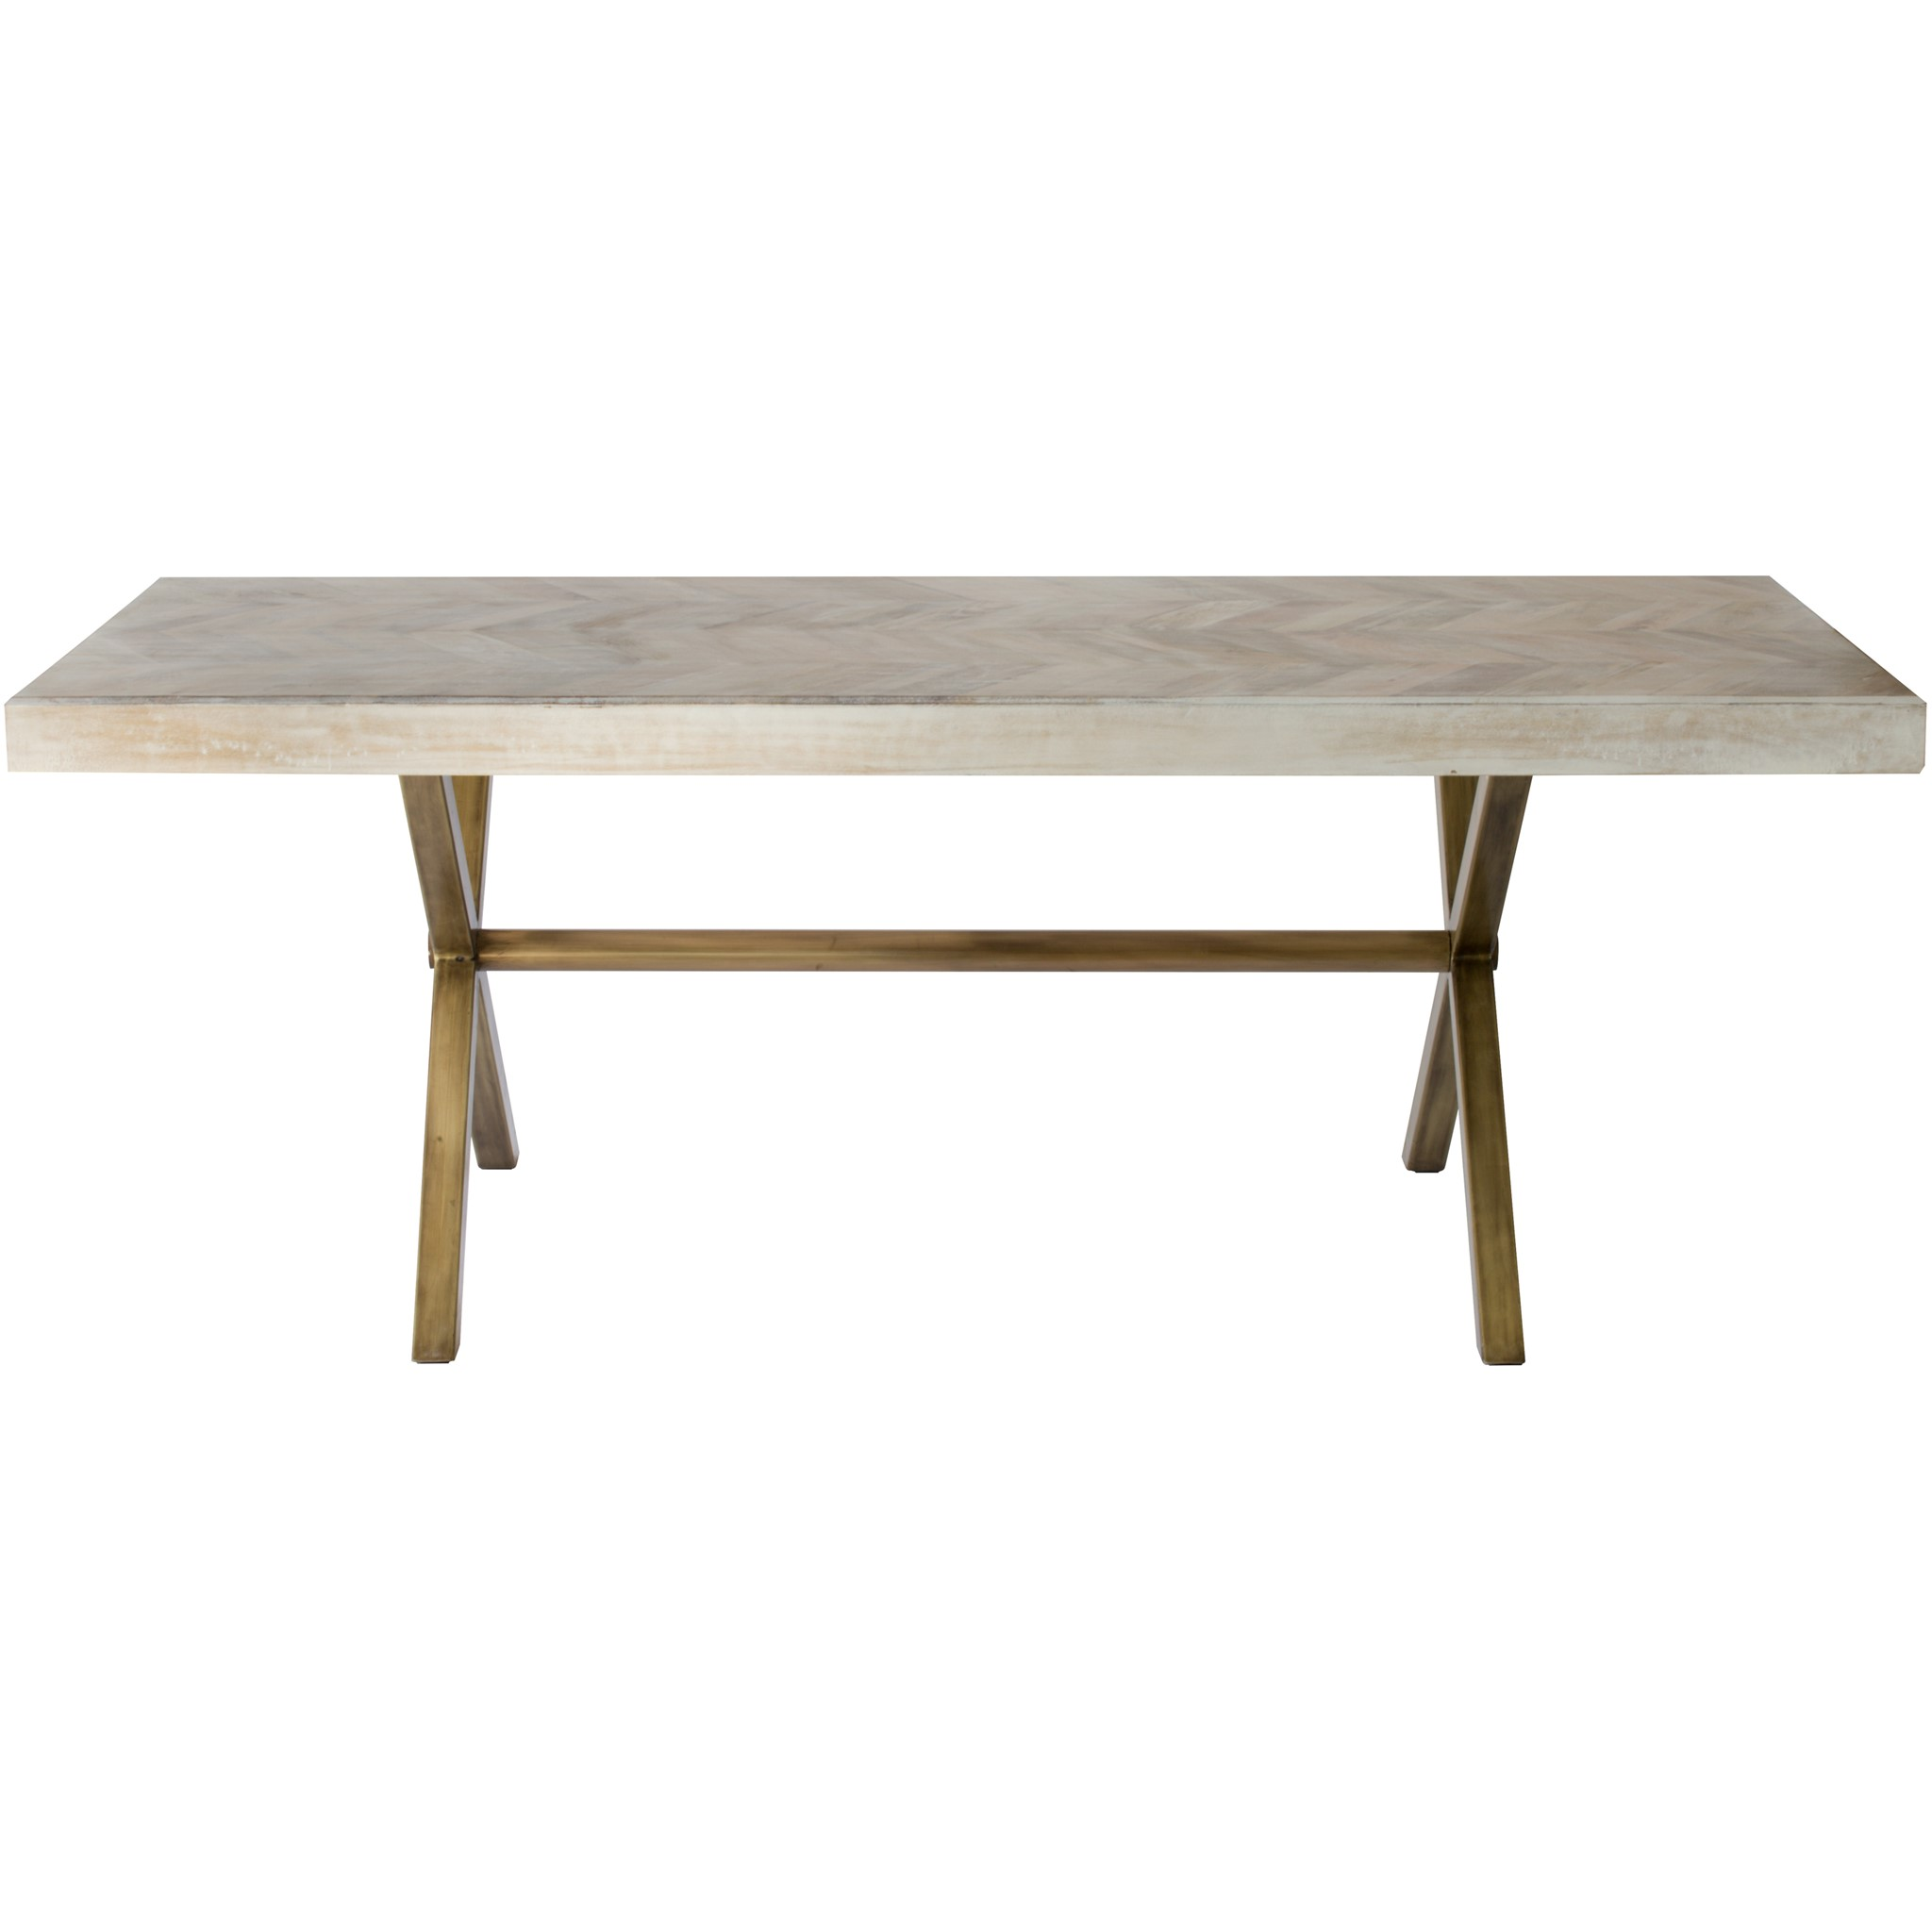 Justinian Dining Table dining tables Selamat